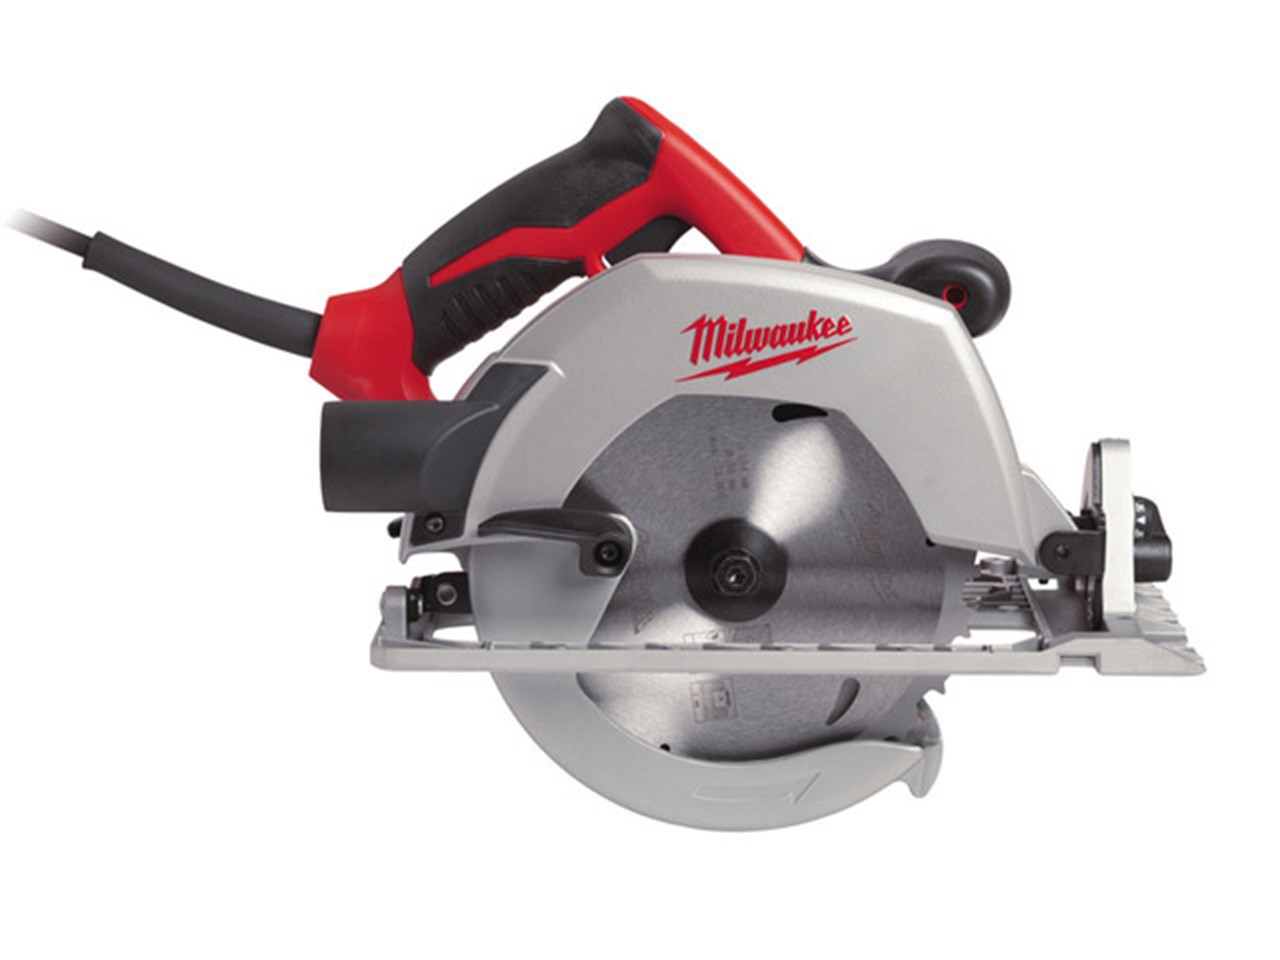 Milwaukee cs60 240v circular saw 61mm greentooth Image collections